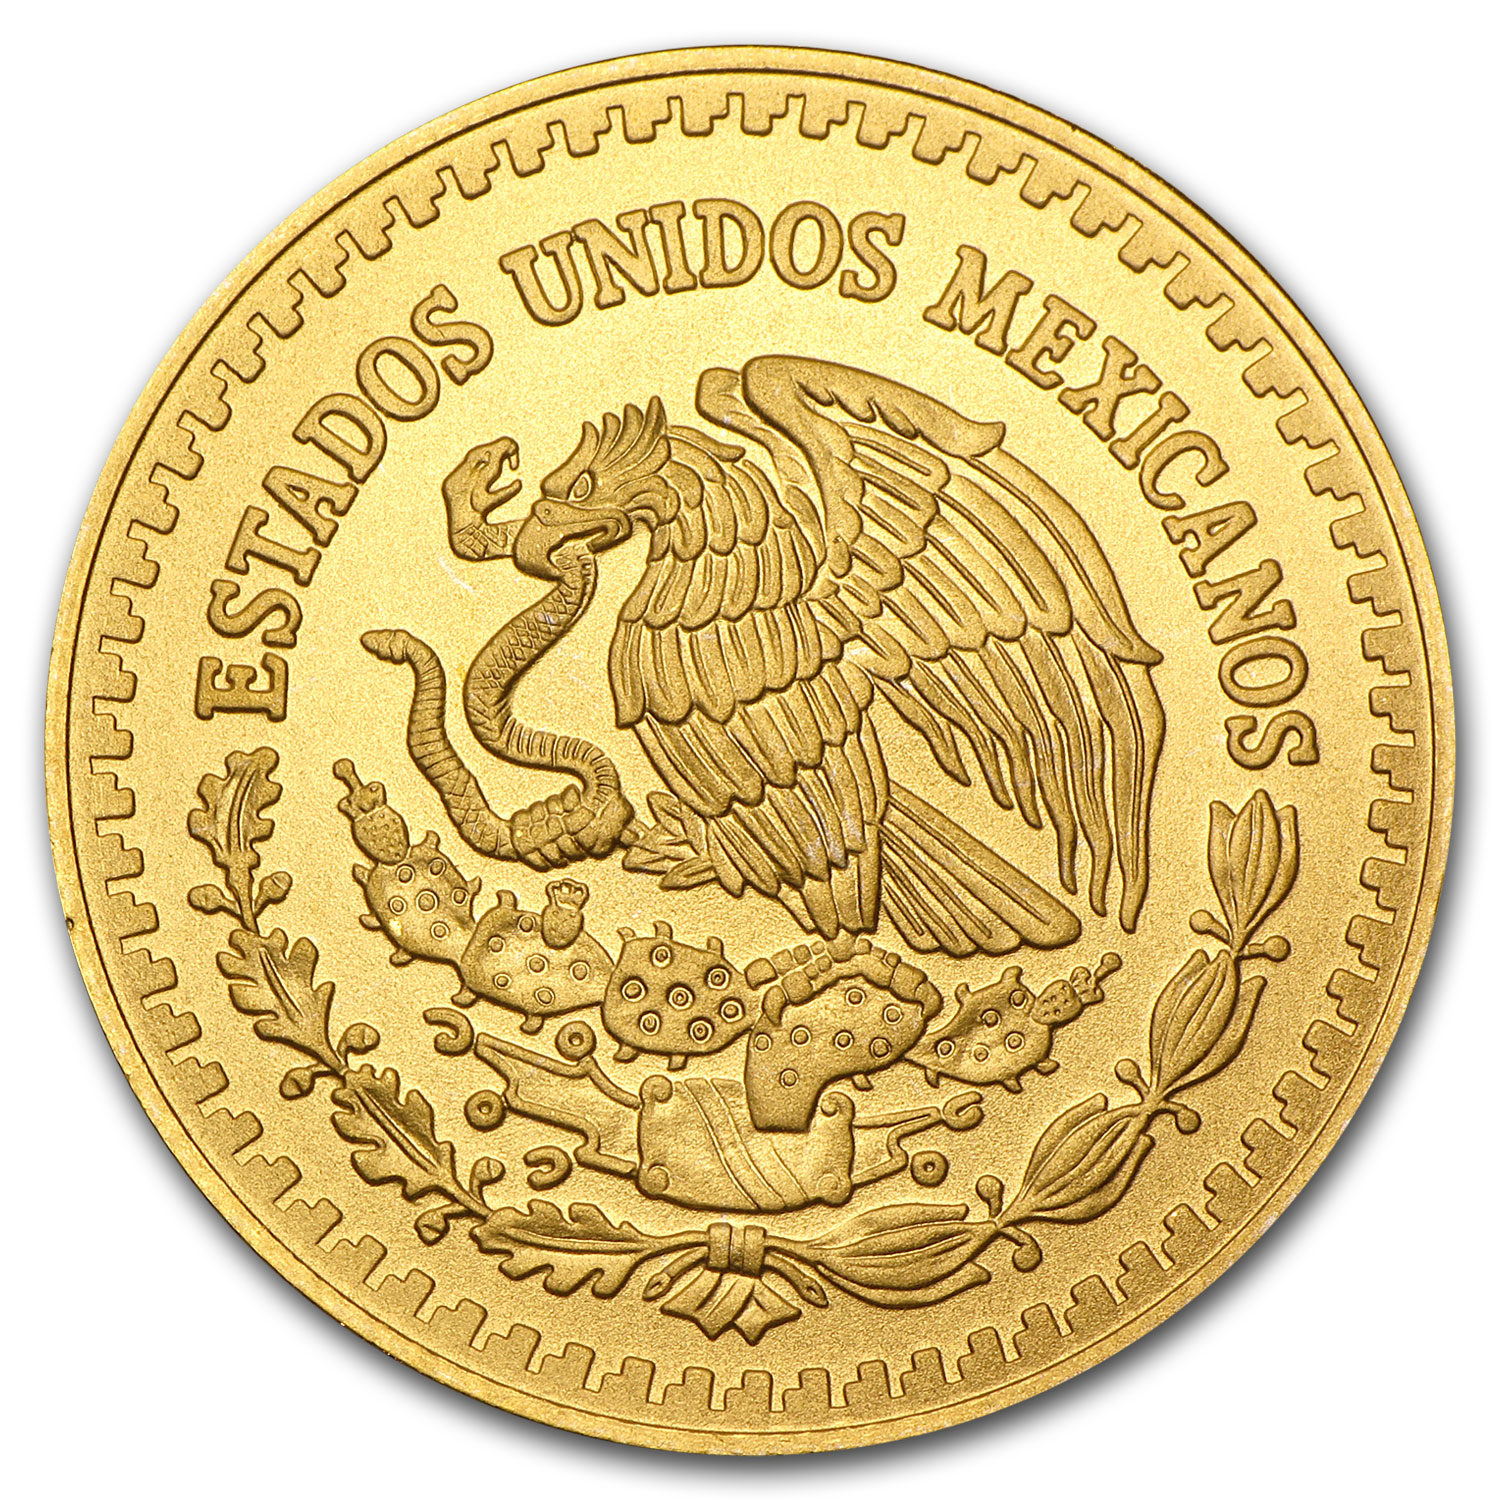 2014 1/2 oz Gold Mexican Libertad (Brilliant Uncirculated)